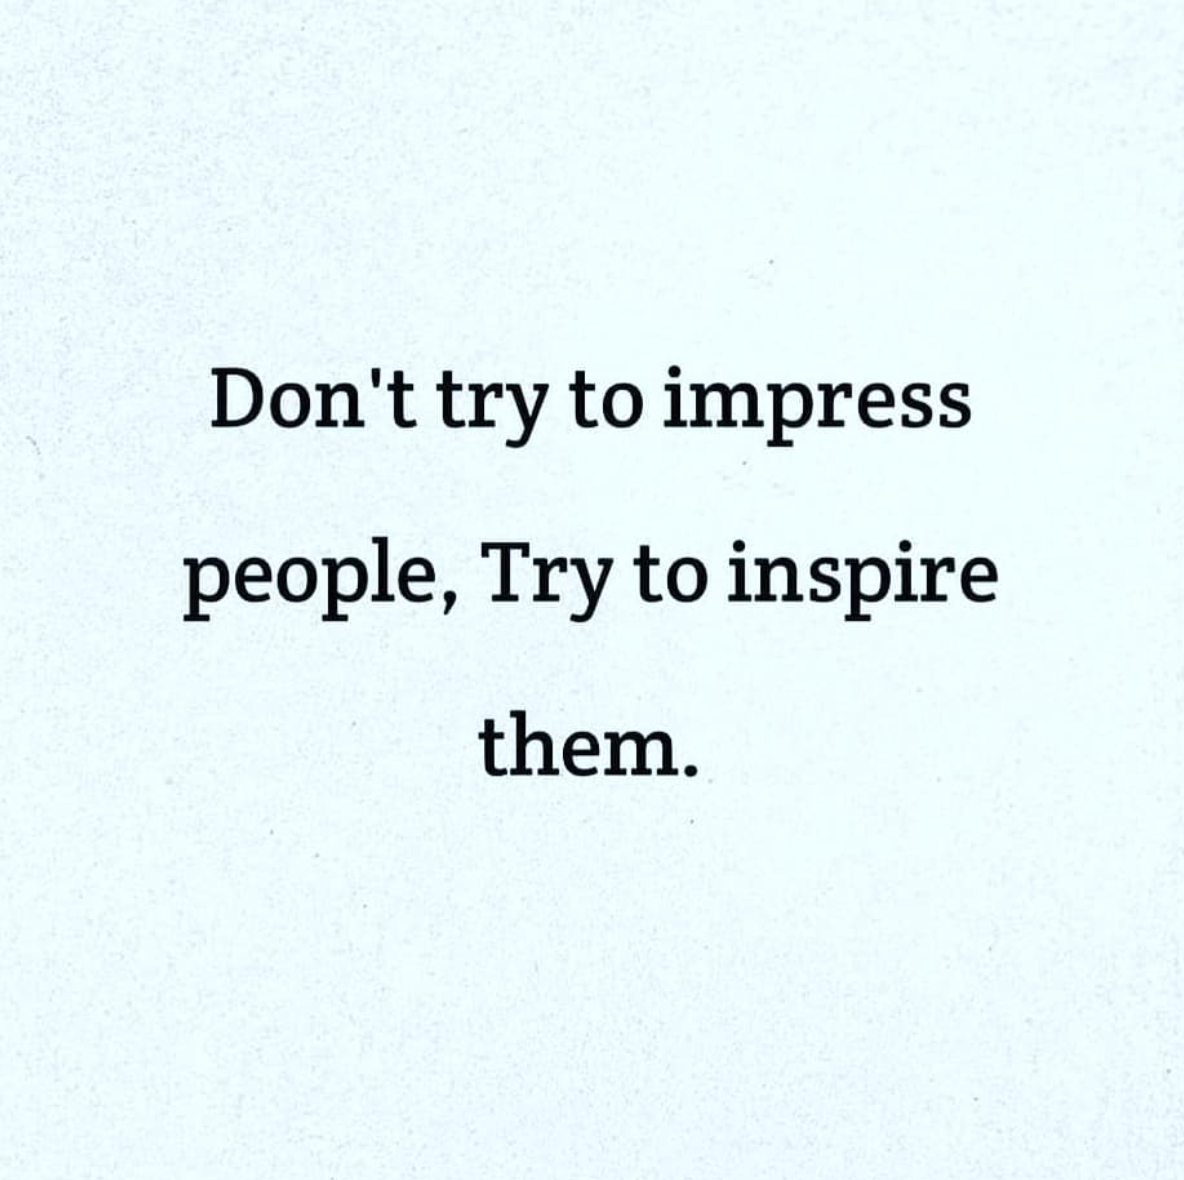 [Image] Don't try to impress people, Try to inspire them